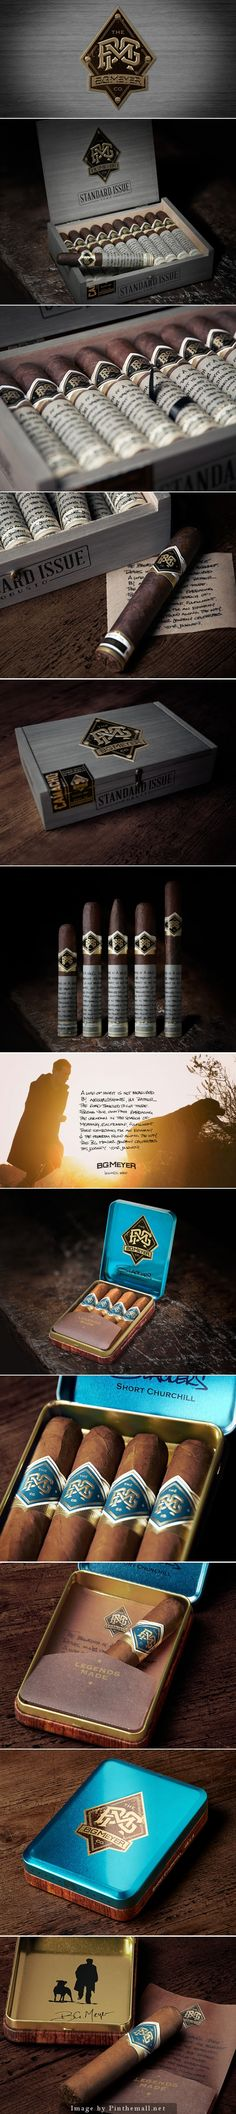 BG Meyer, Creative Agency: Colangelo Packaging Group - http://www.packagingoftheworld.com/2014/10/bg-meyer.html